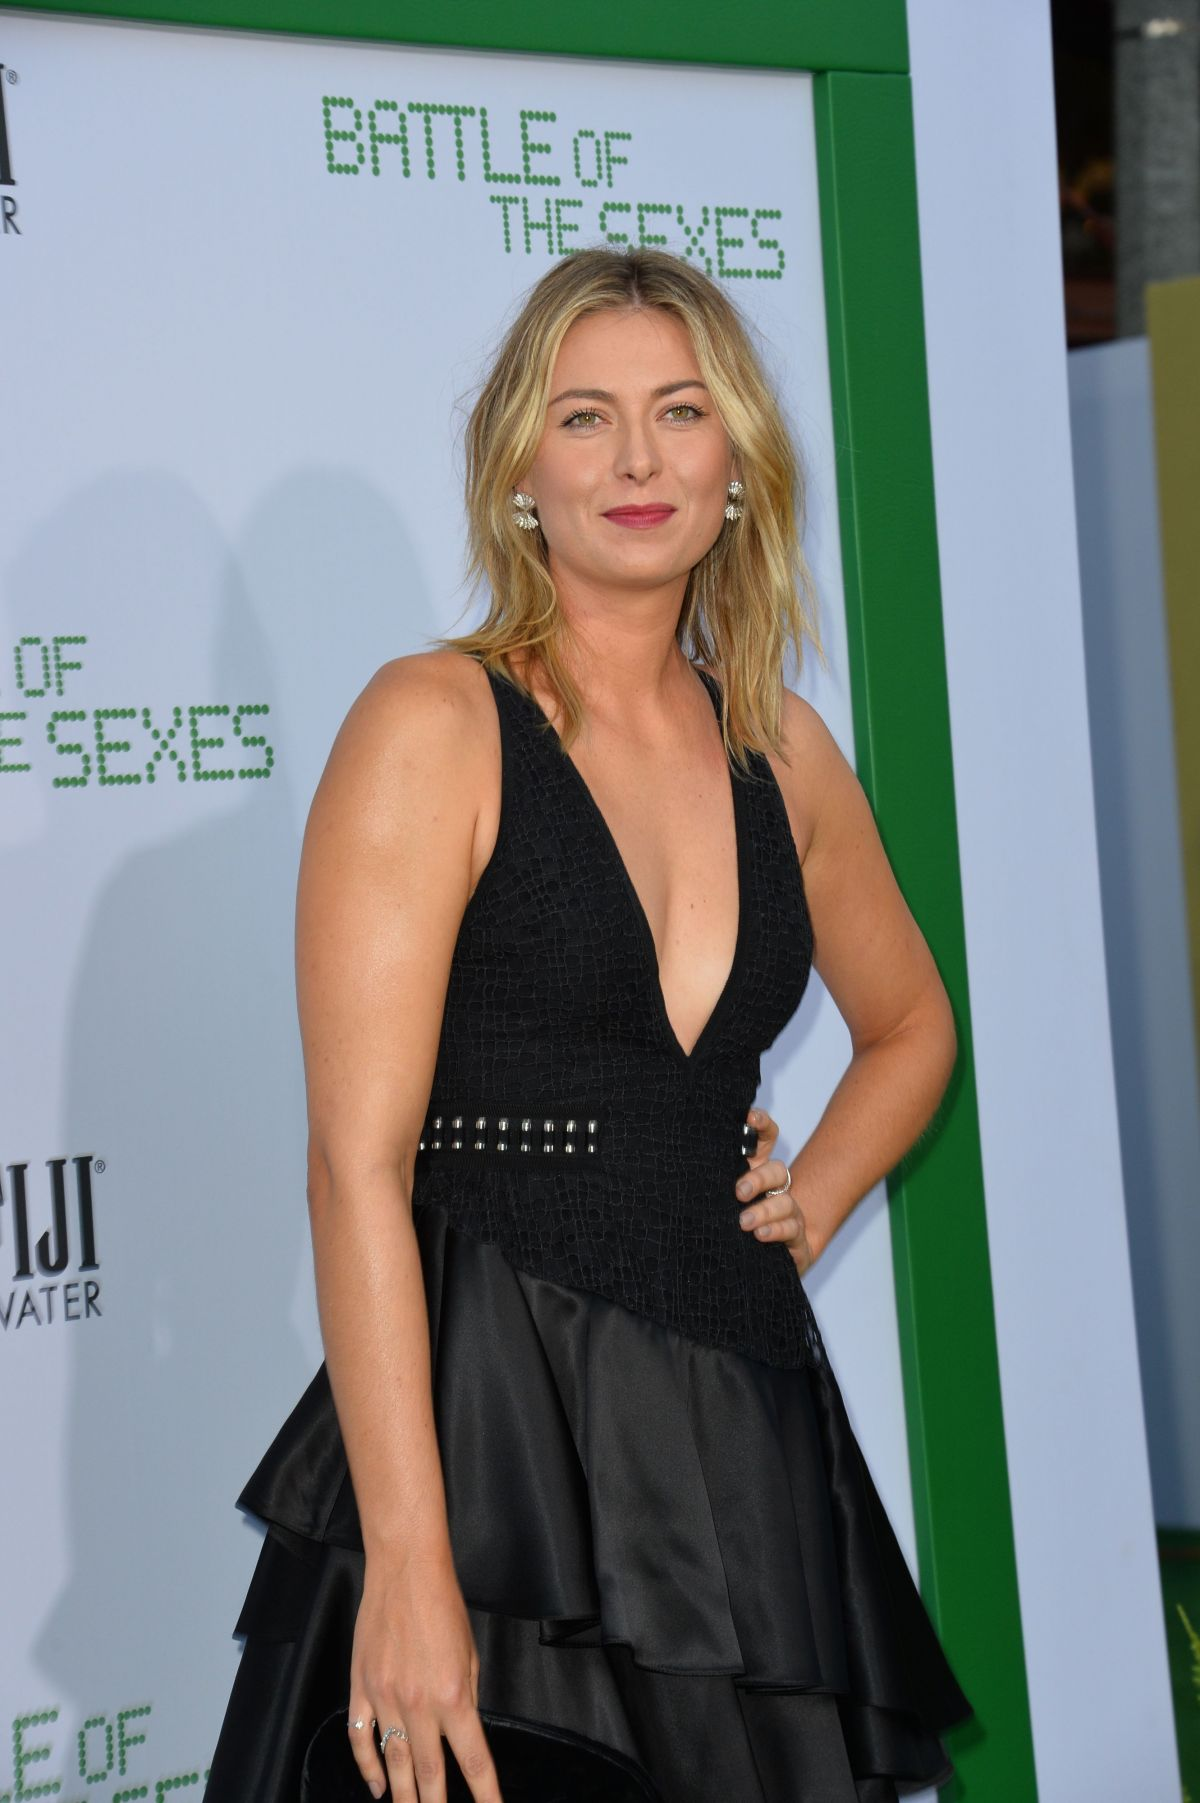 MARIA SHARAPOVA at Battle of the Sexes Premiere in Los Angeles 09/16/2017